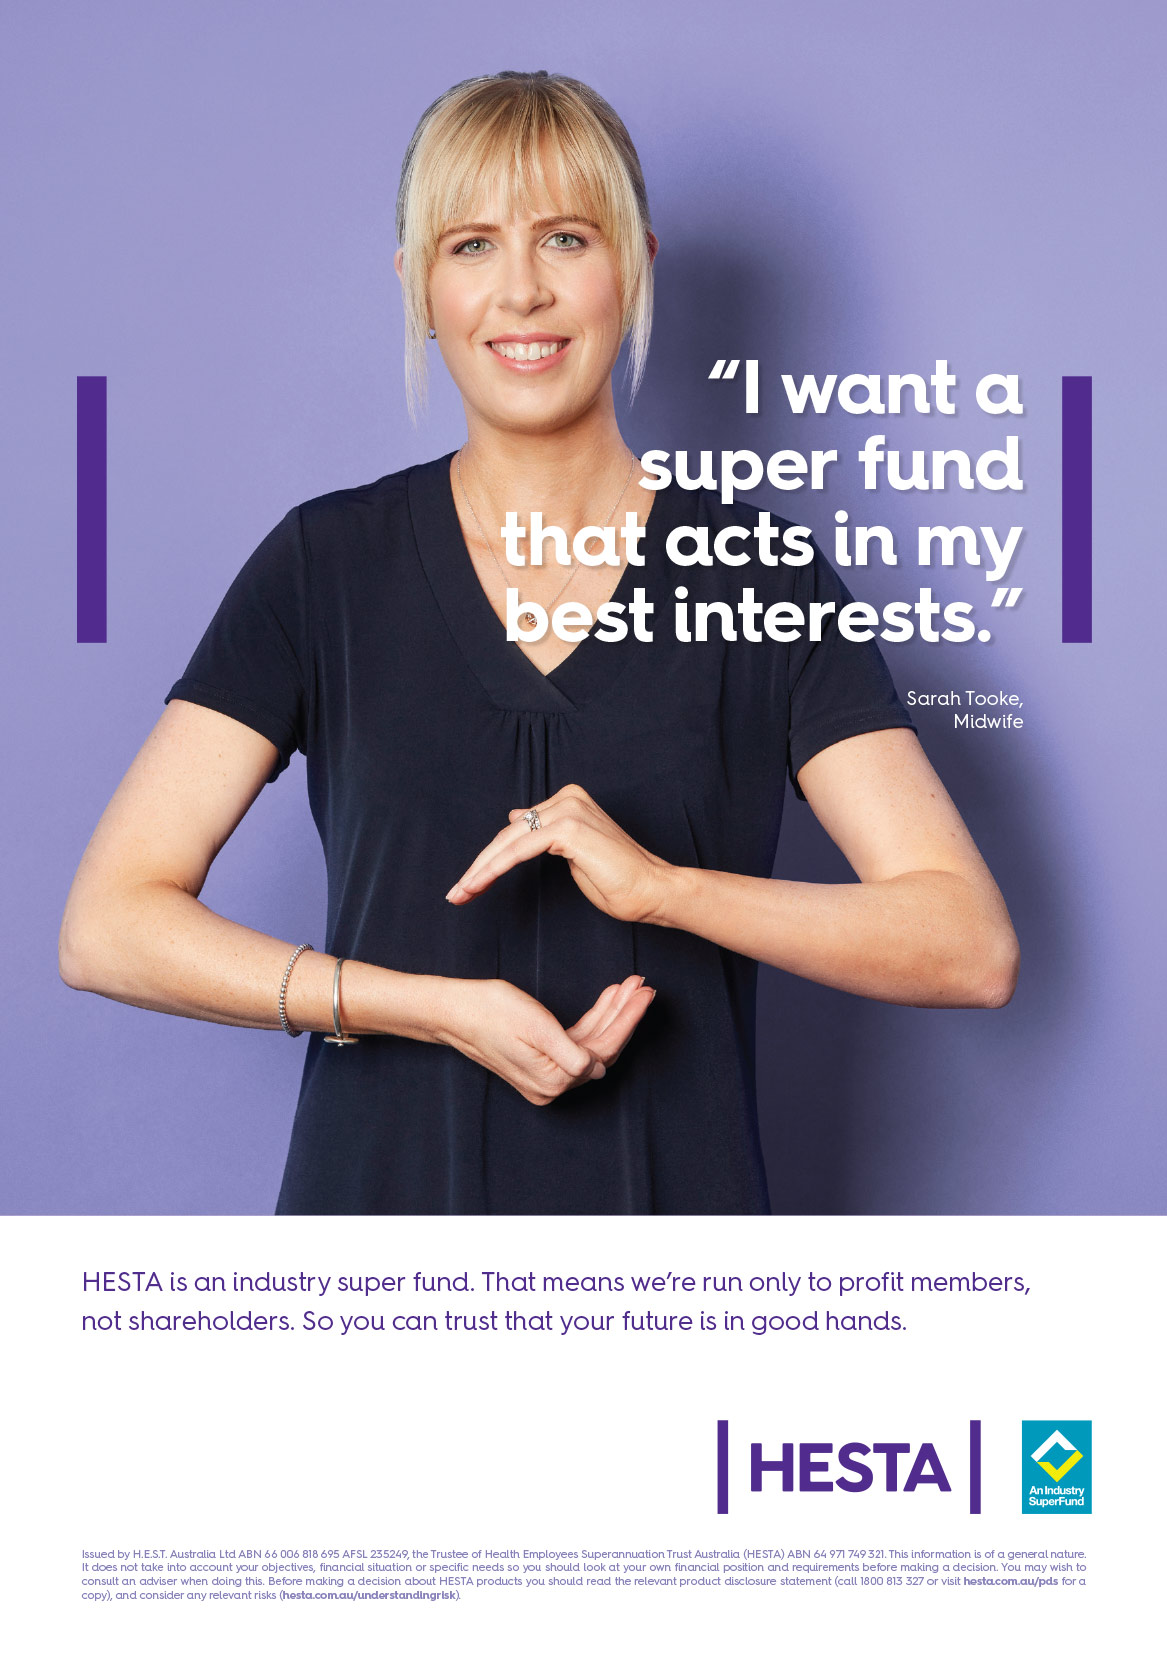 HESTA I want a super fund that acts in my best interests.